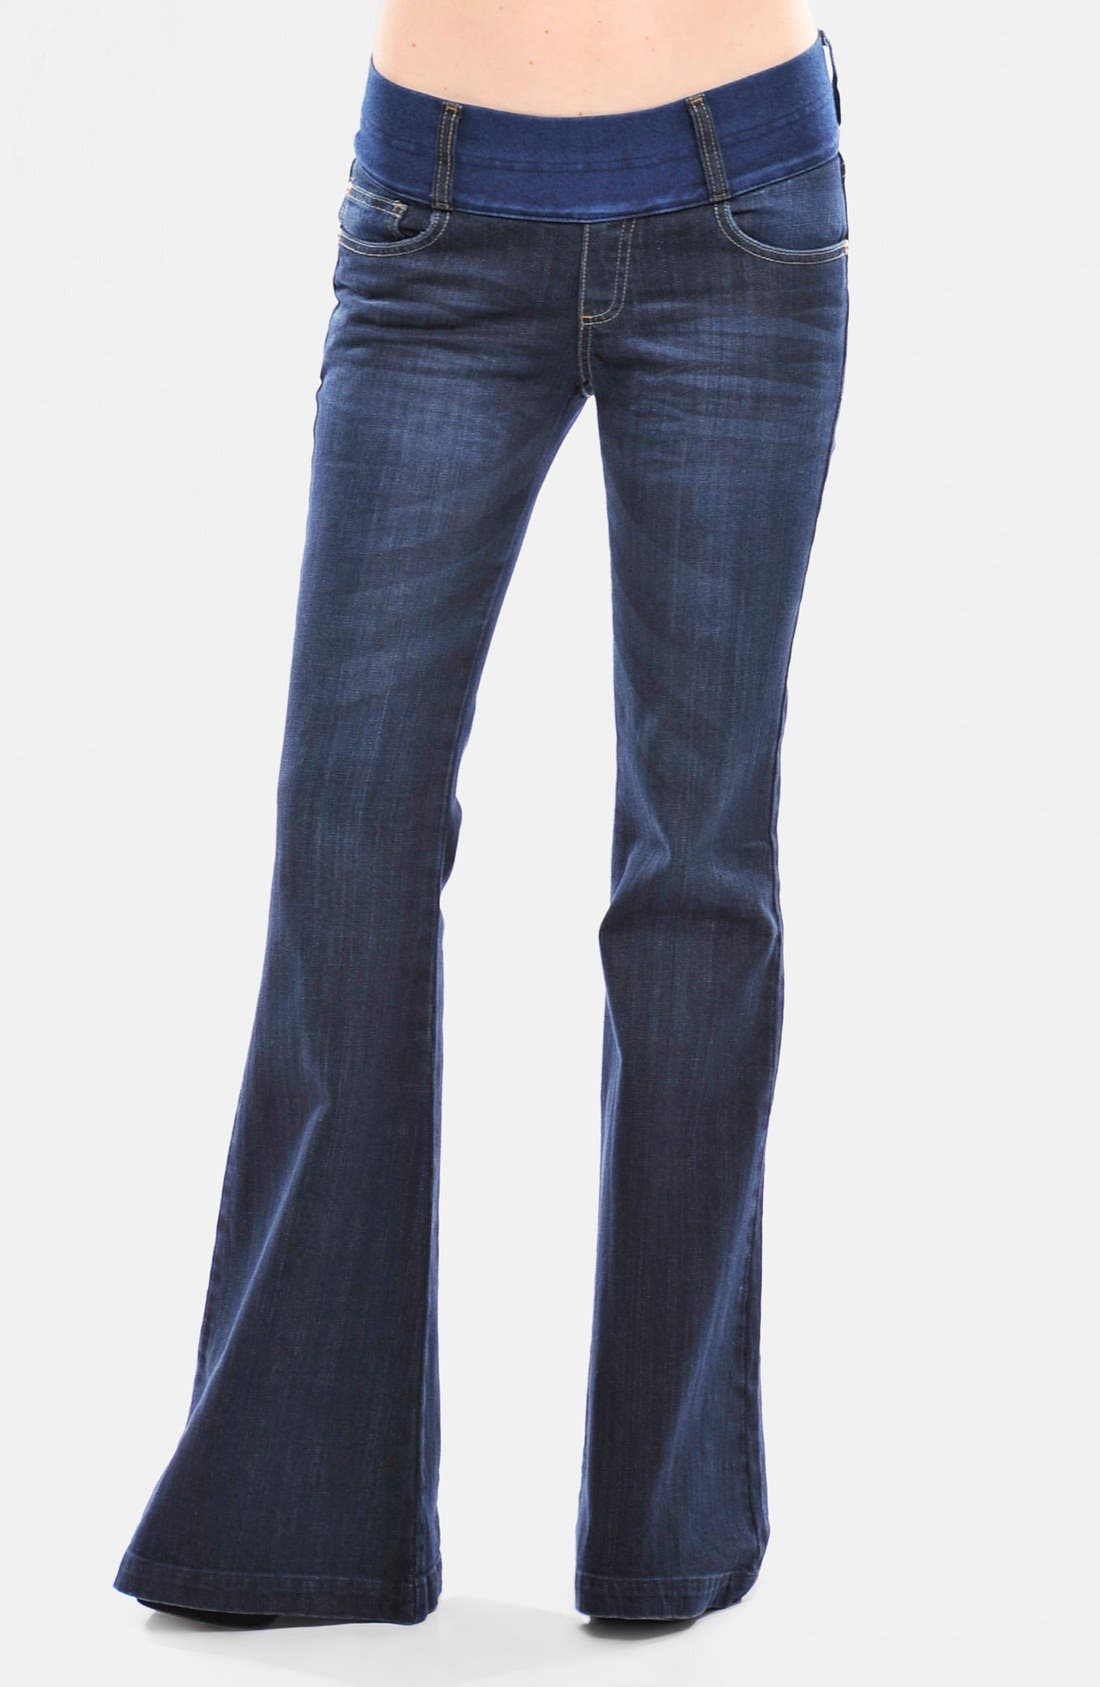 Alternate Image 1 Selected - Olian Flare Maternity Jeans